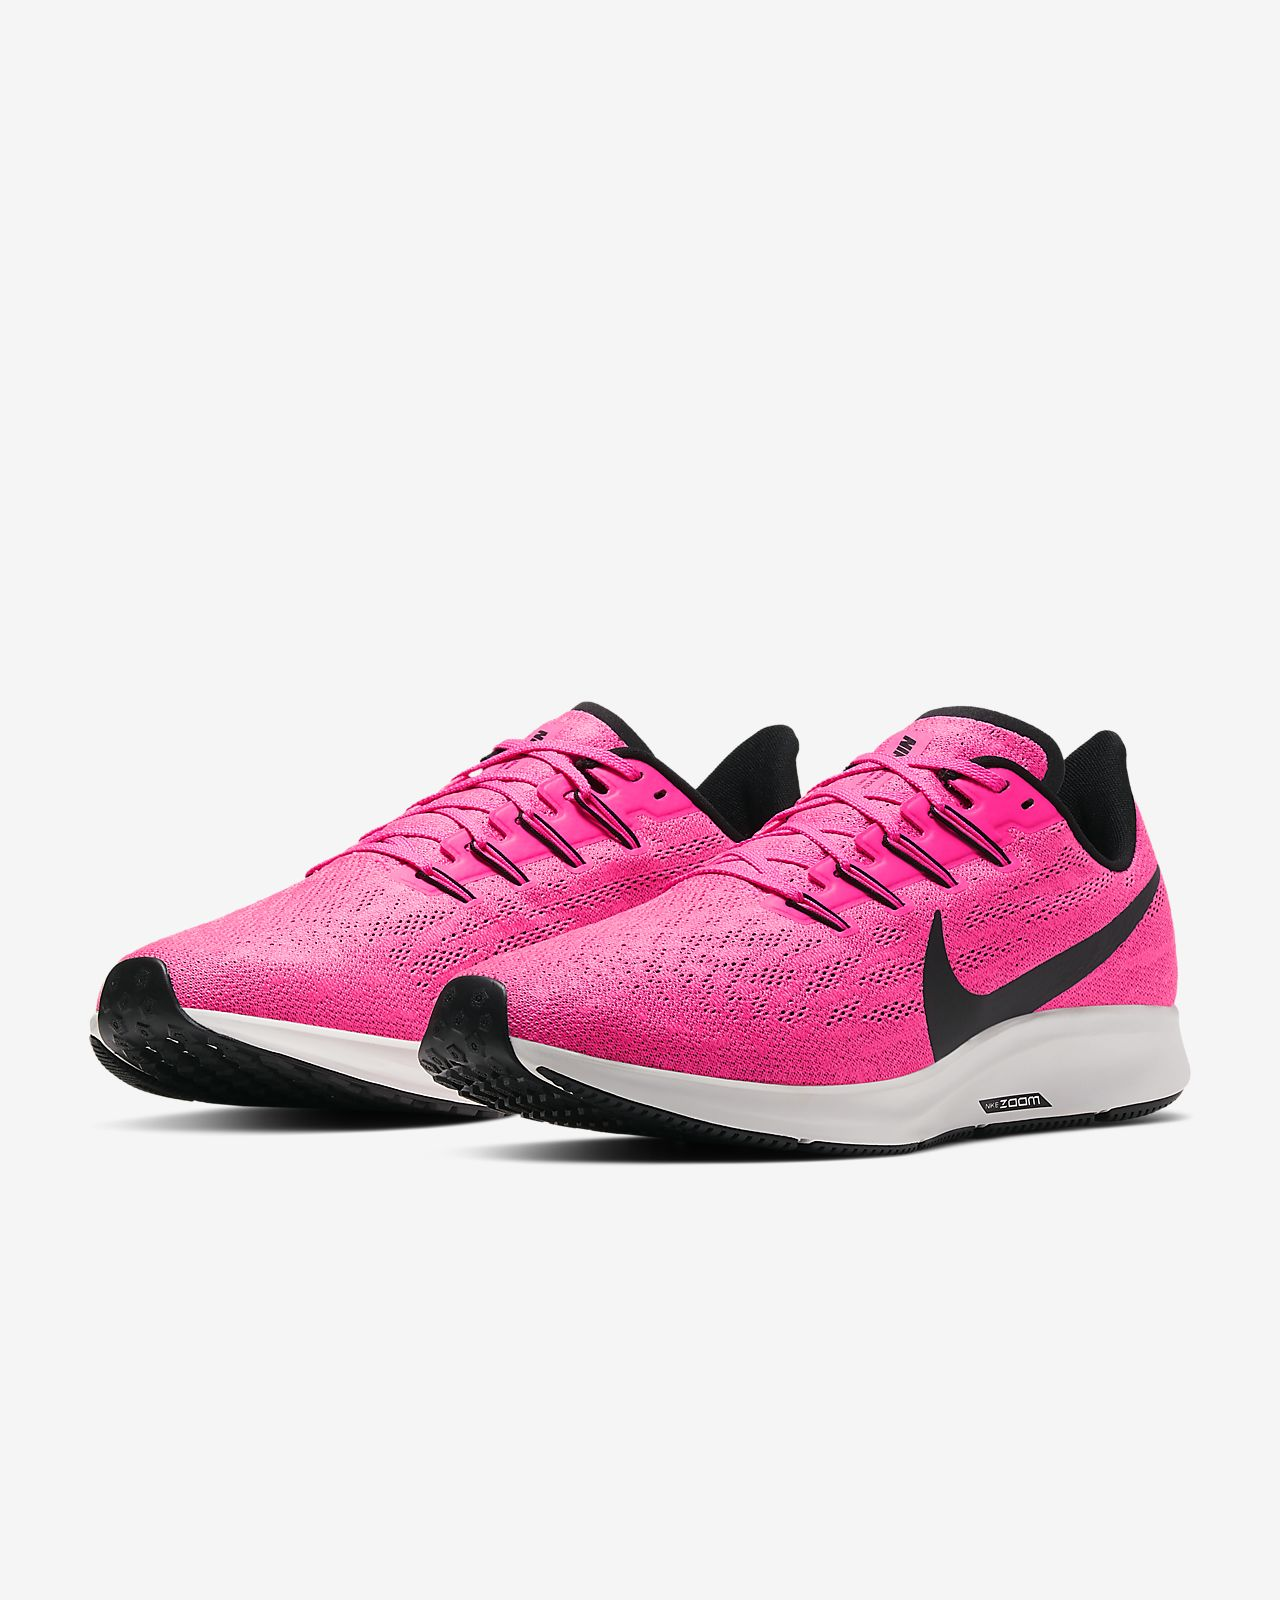 Achat Incroyable Remise 50% OFF Nike Free Run 2.0 Sneaker